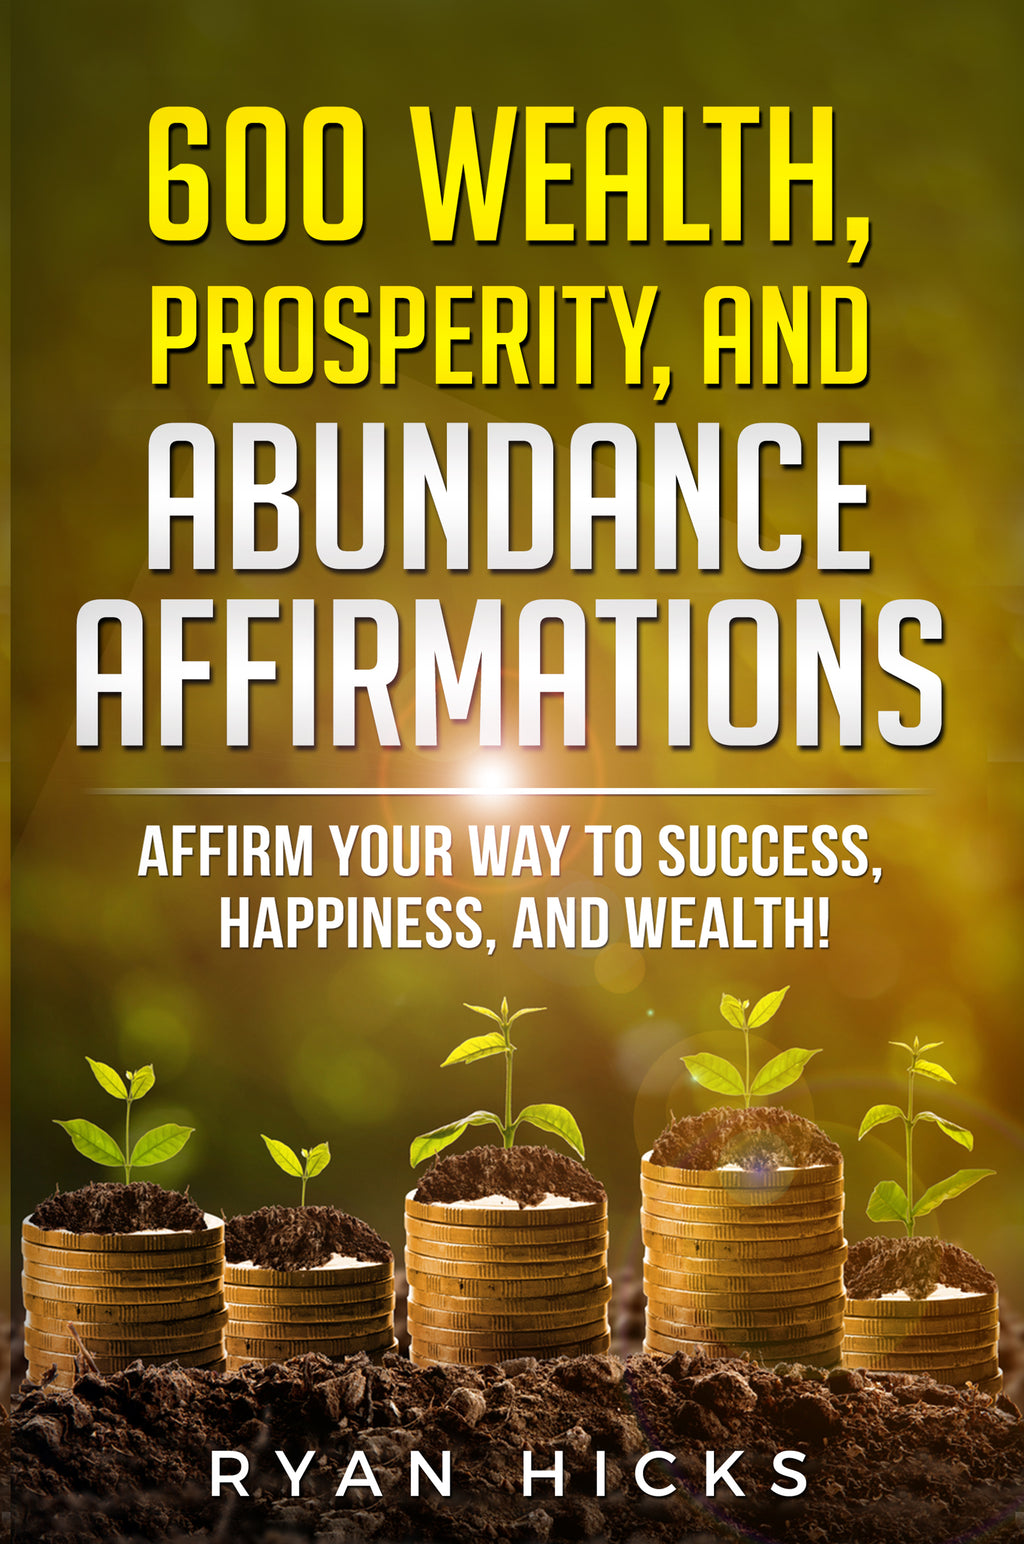 600 Wealth, Prosperity, And Abundance Affirmations: Affirm Your Way To Success, Happiness, And Wealth! By Ryan Hicks